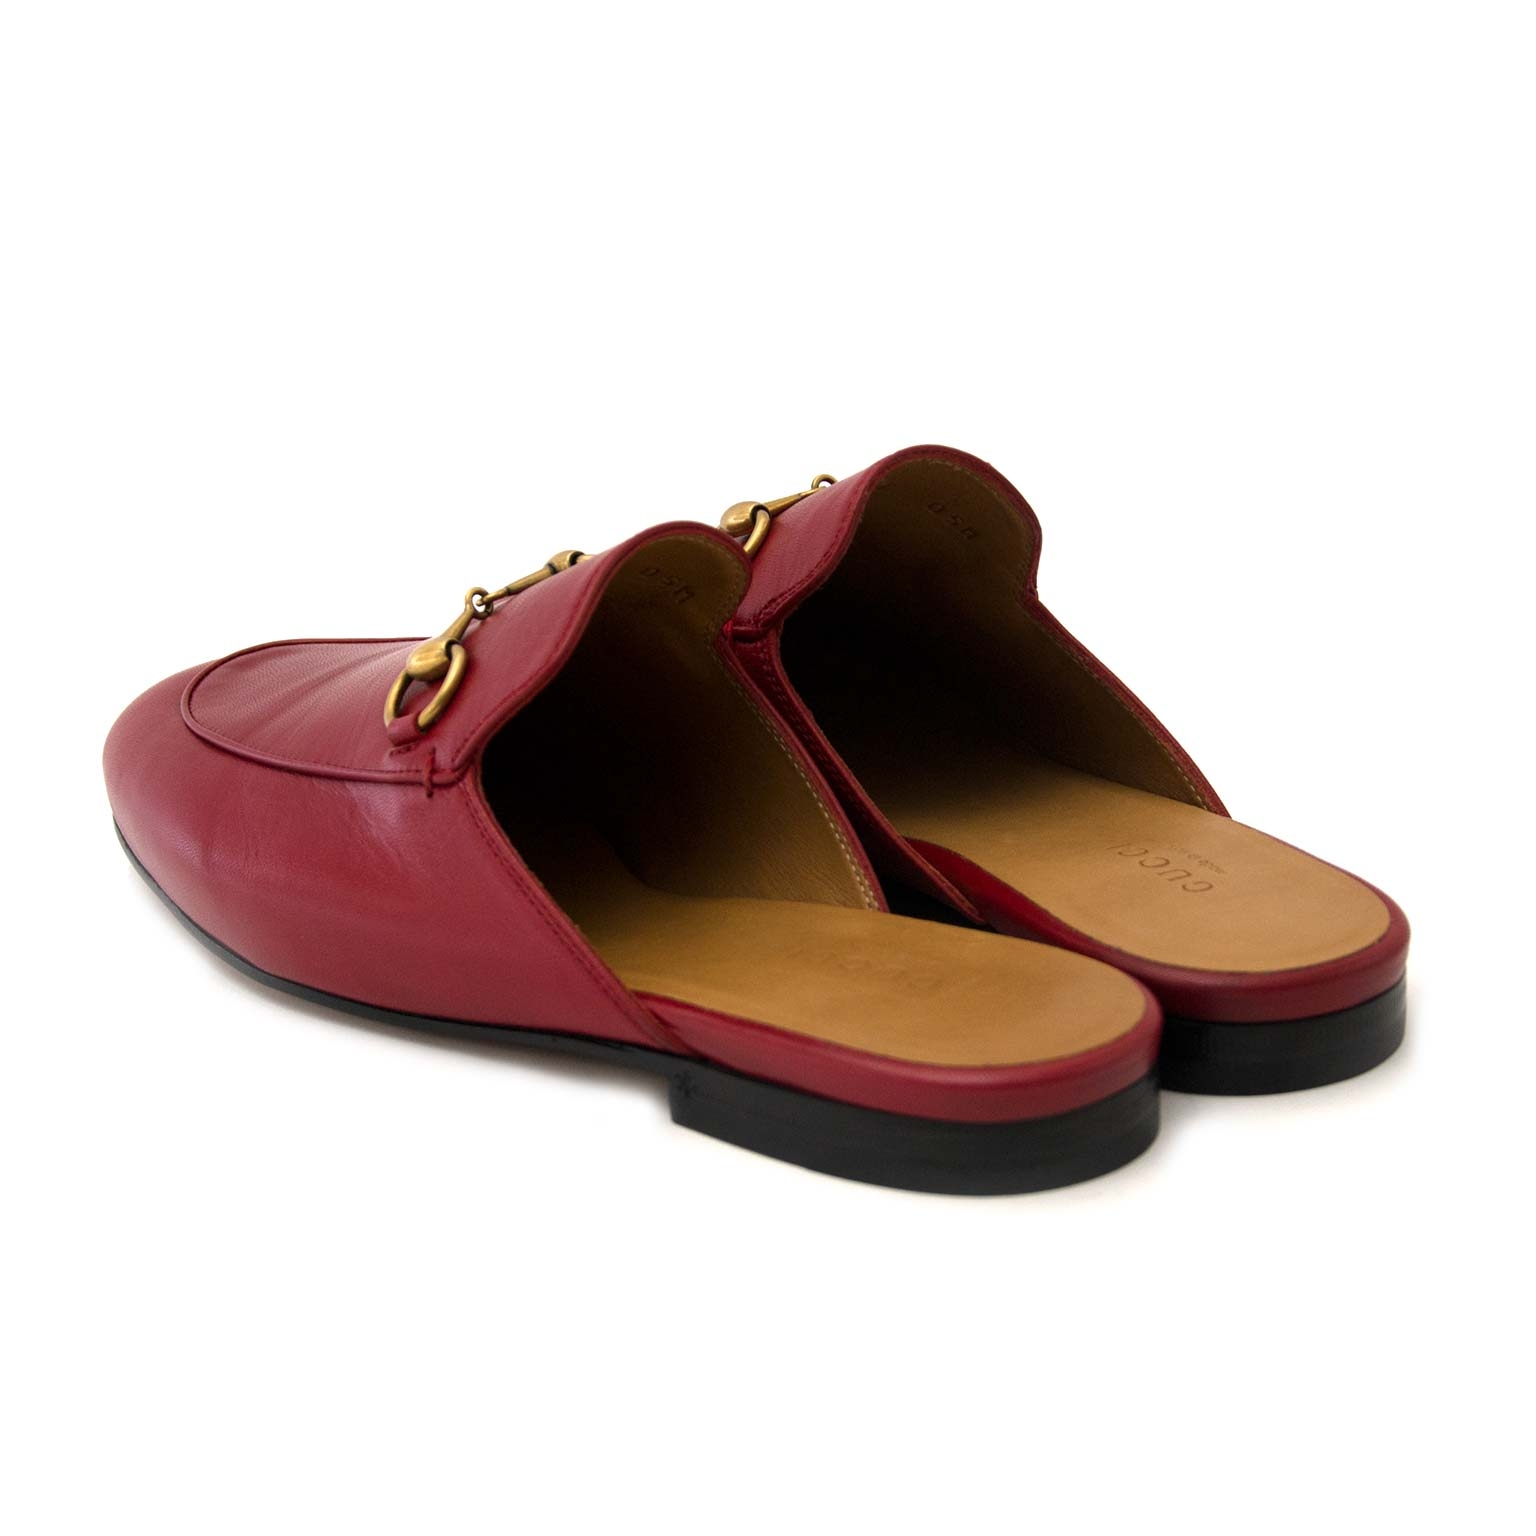 d94d805ef ... buy secondhand authentic Gucci Princetown Leather Slipper at the right  price at Labellov, online vintage